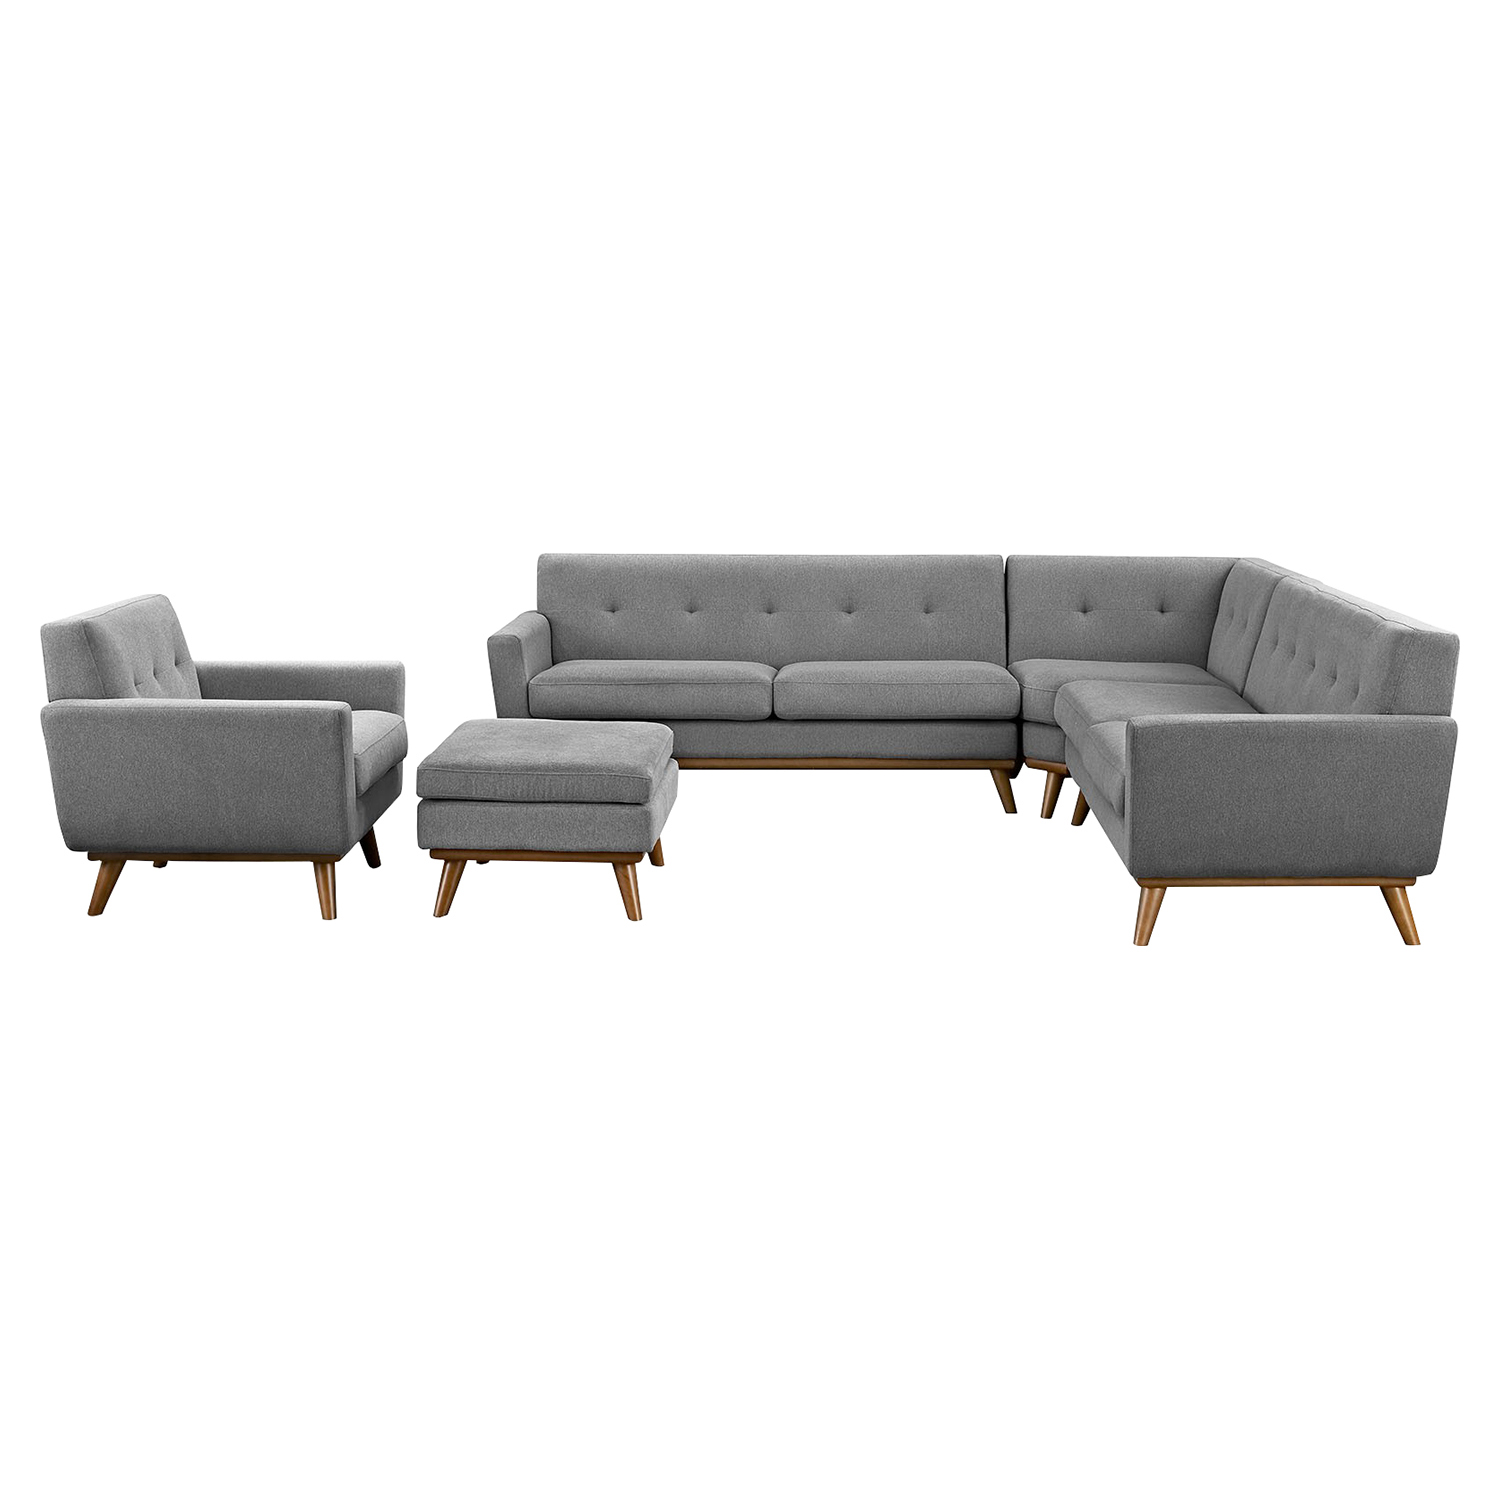 Engage 5 Pieces Sectional Sofa - EEI-2186-SET